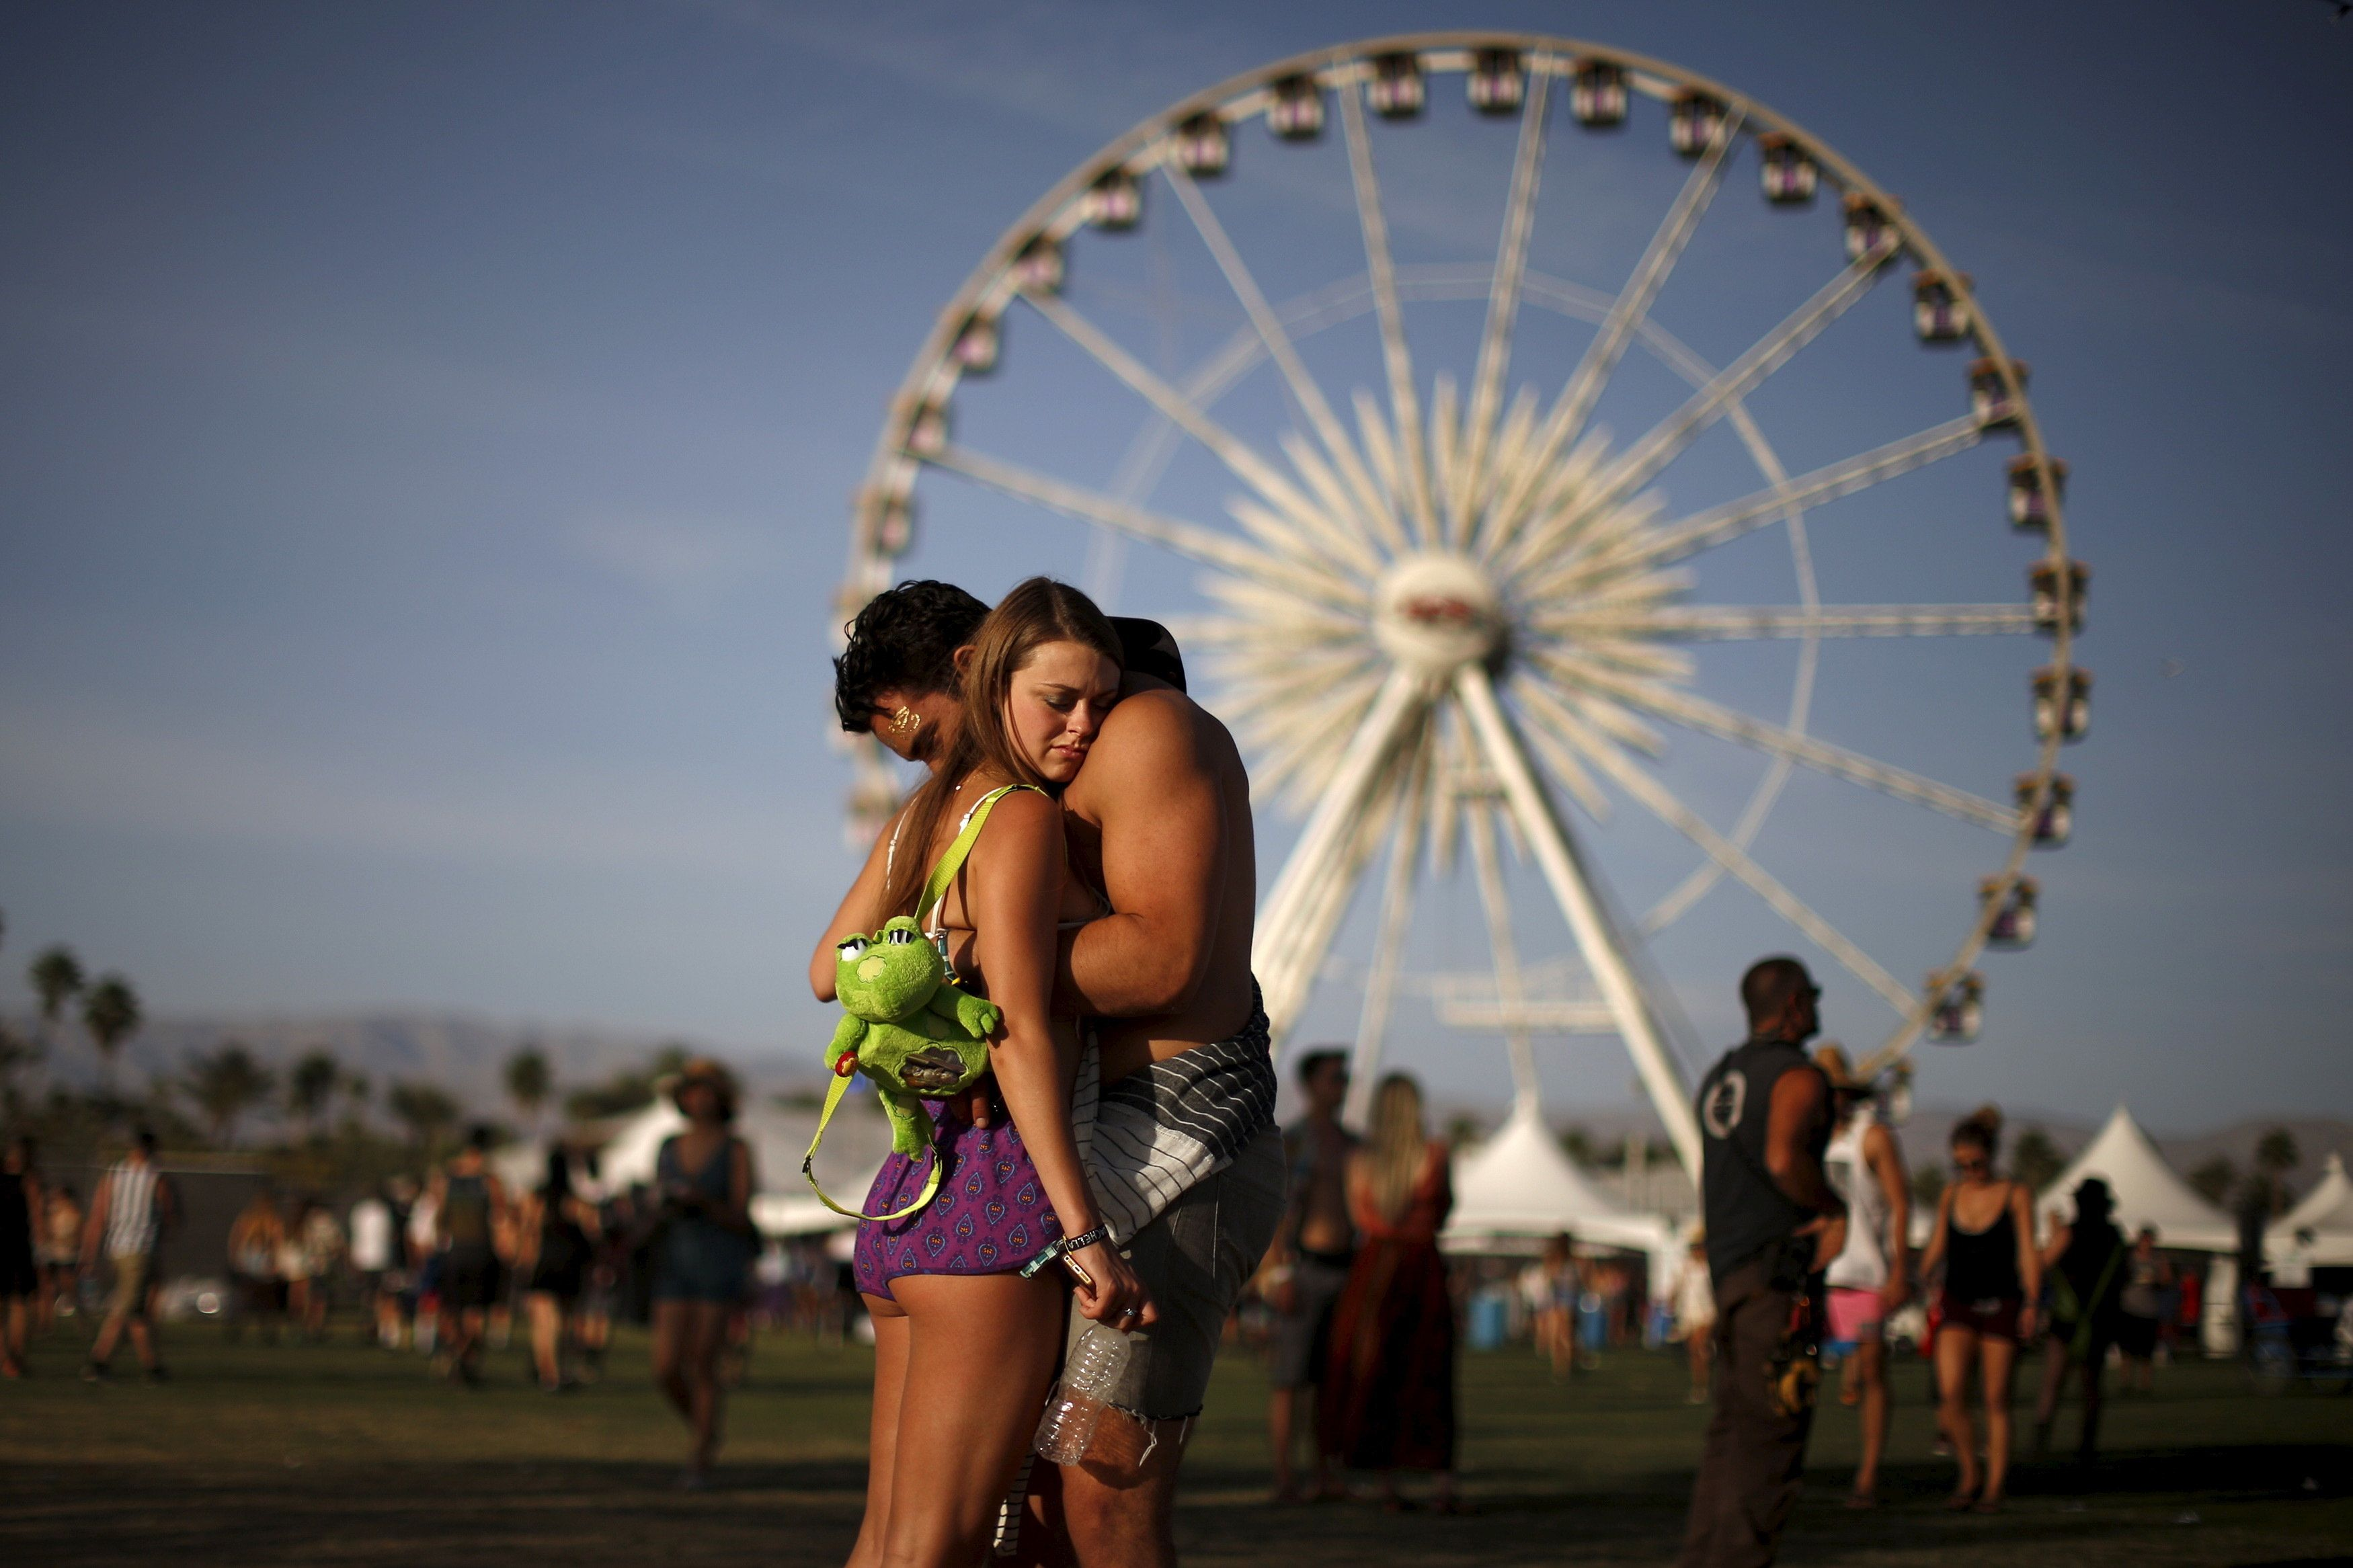 Coachella's Owner Under Fire For Alleged Ties To Anti-LGBTQ